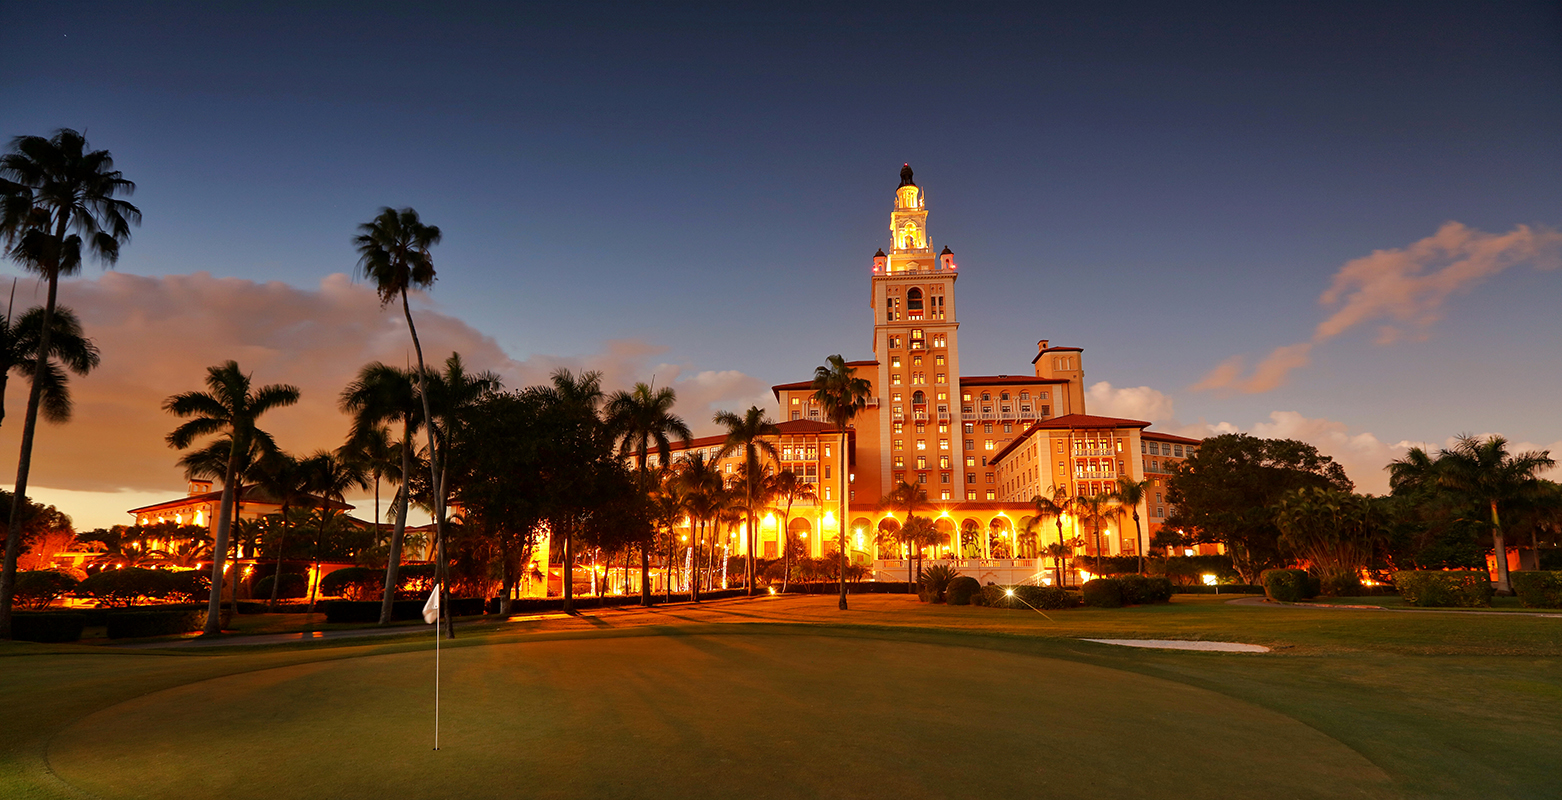 The Biltmore Miami Coral Gables is the perfect location for our premier golf school. Today, the 273 room hotel and resort is synonymous with luxury and class, providing an array of amenities for our students and guests.